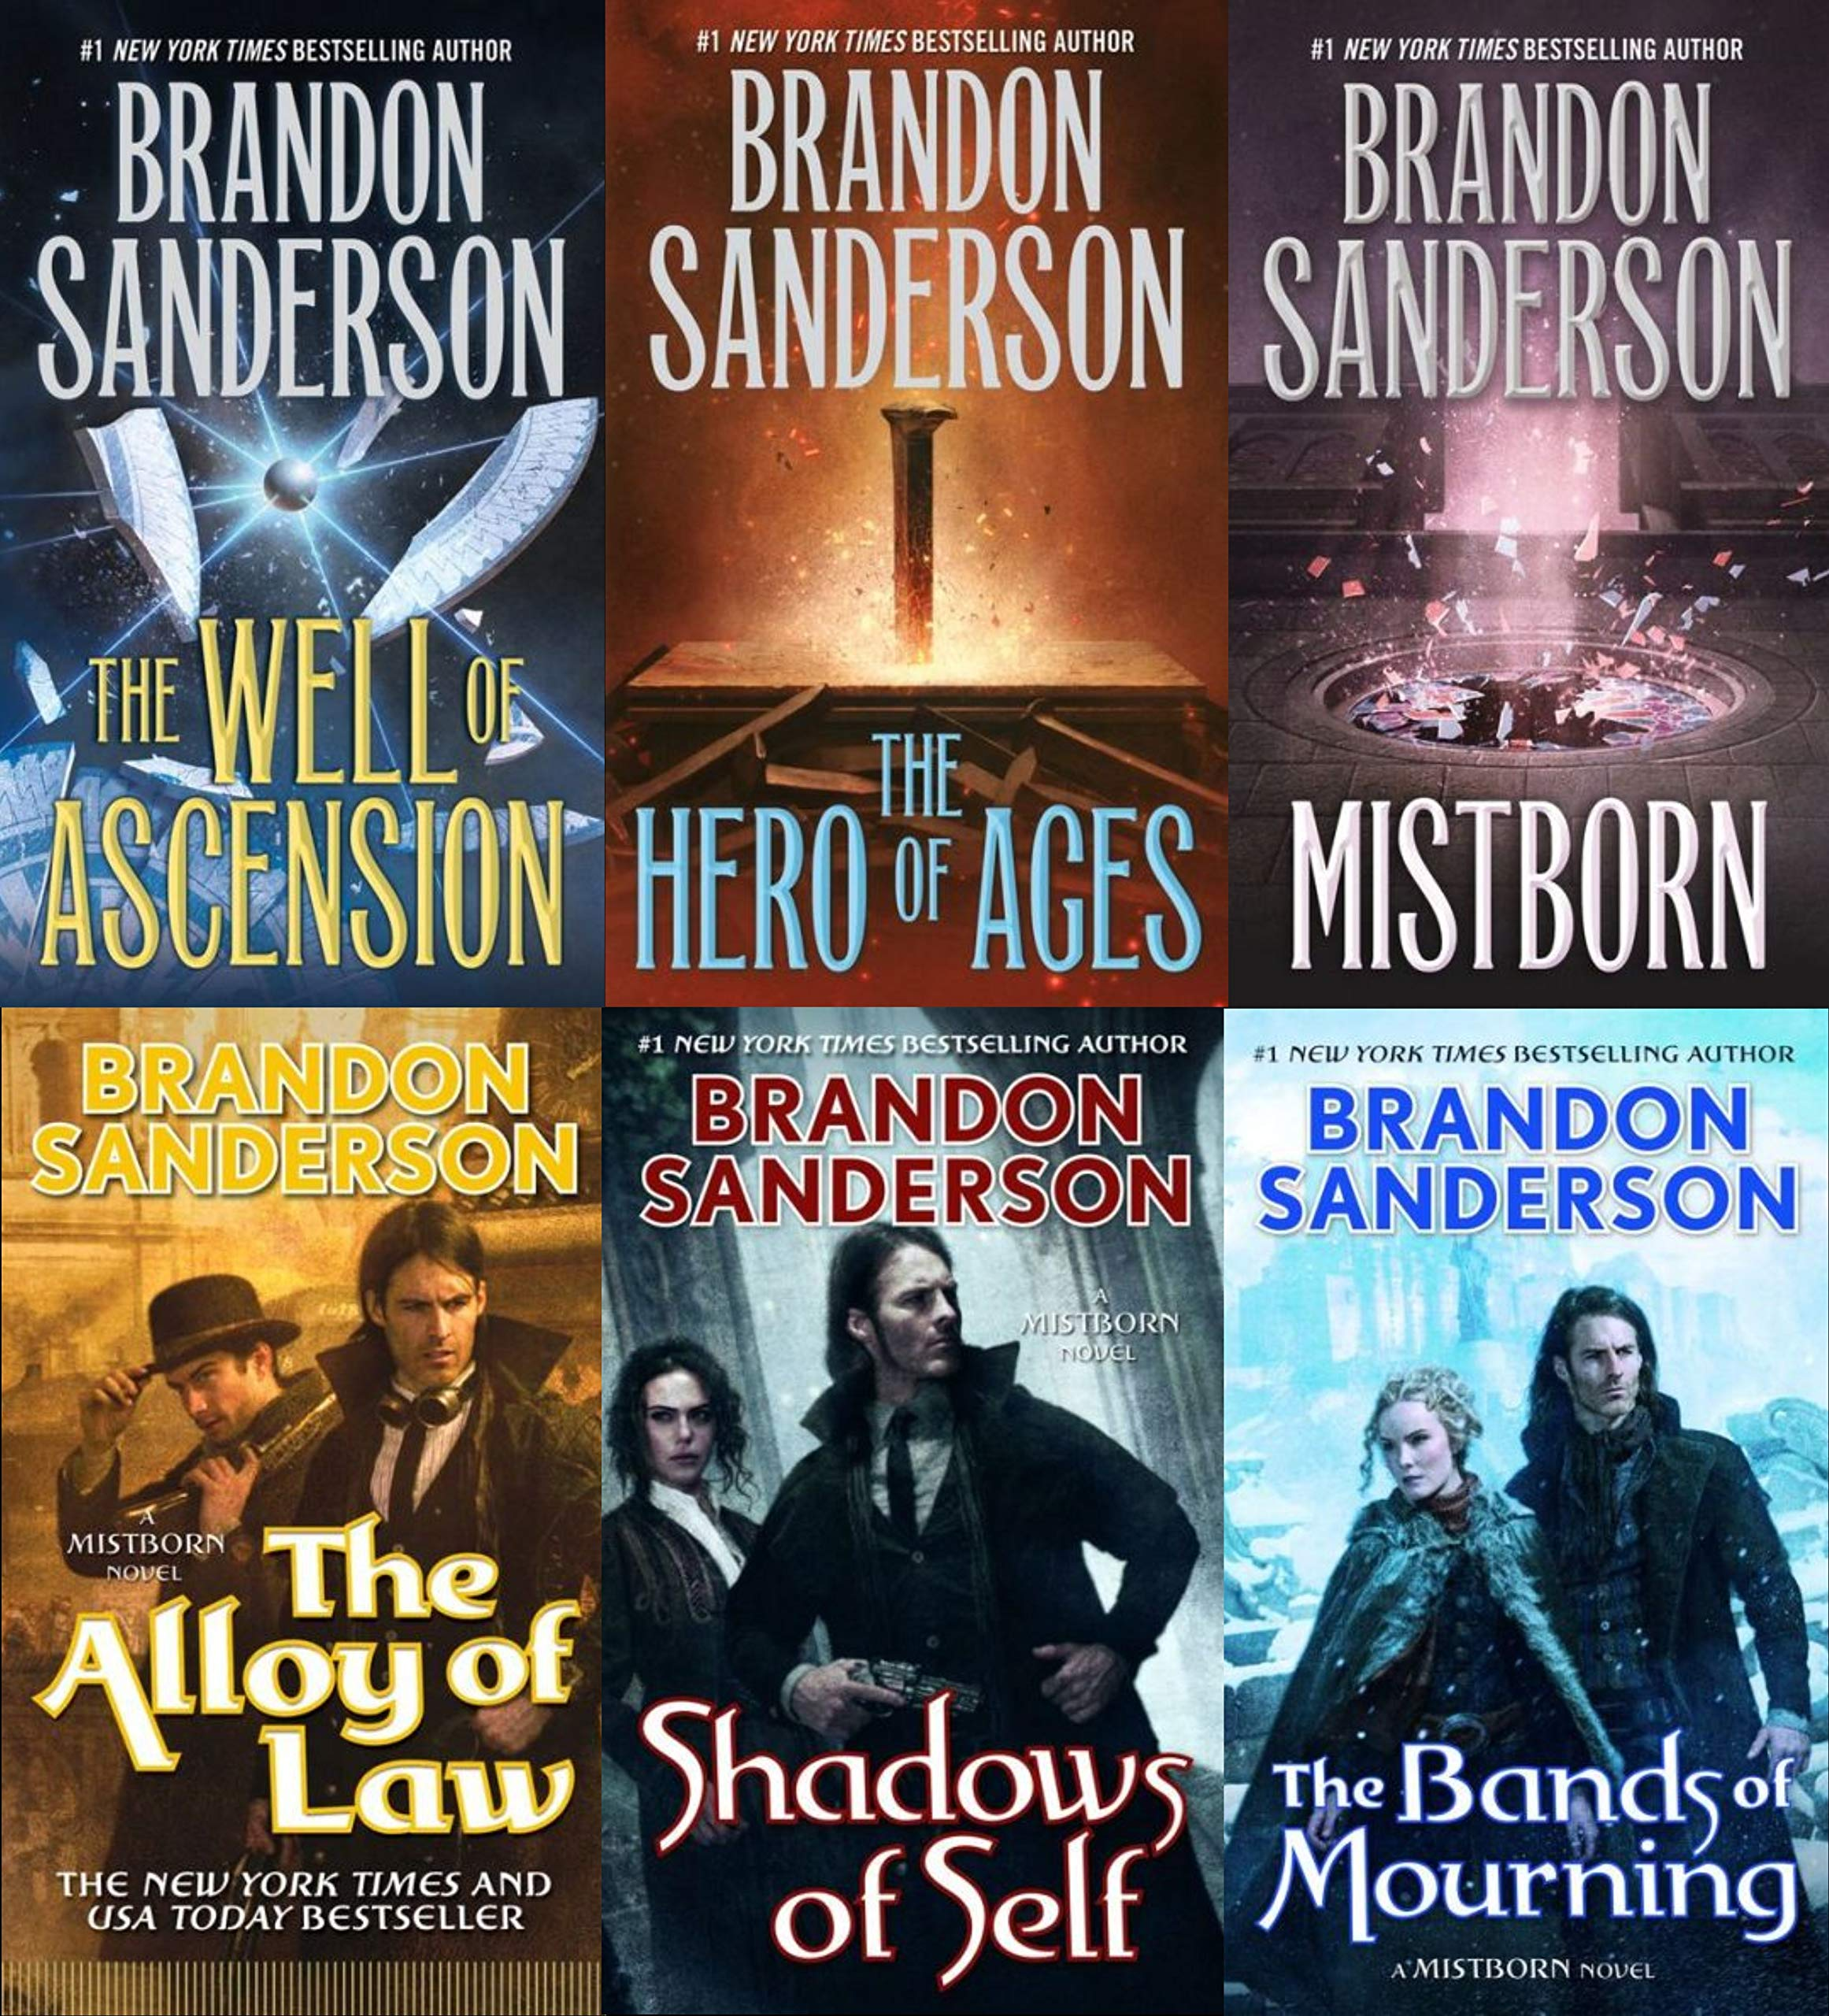 Mistborn 6 Books Collection Set by Brandon Sanderson (Final Empire, Well of  Ascension, Hero of Ages, Band of Mourning, Alloy of Law & Shadows of Self): Brandon  Sanderson, The Final Empire By